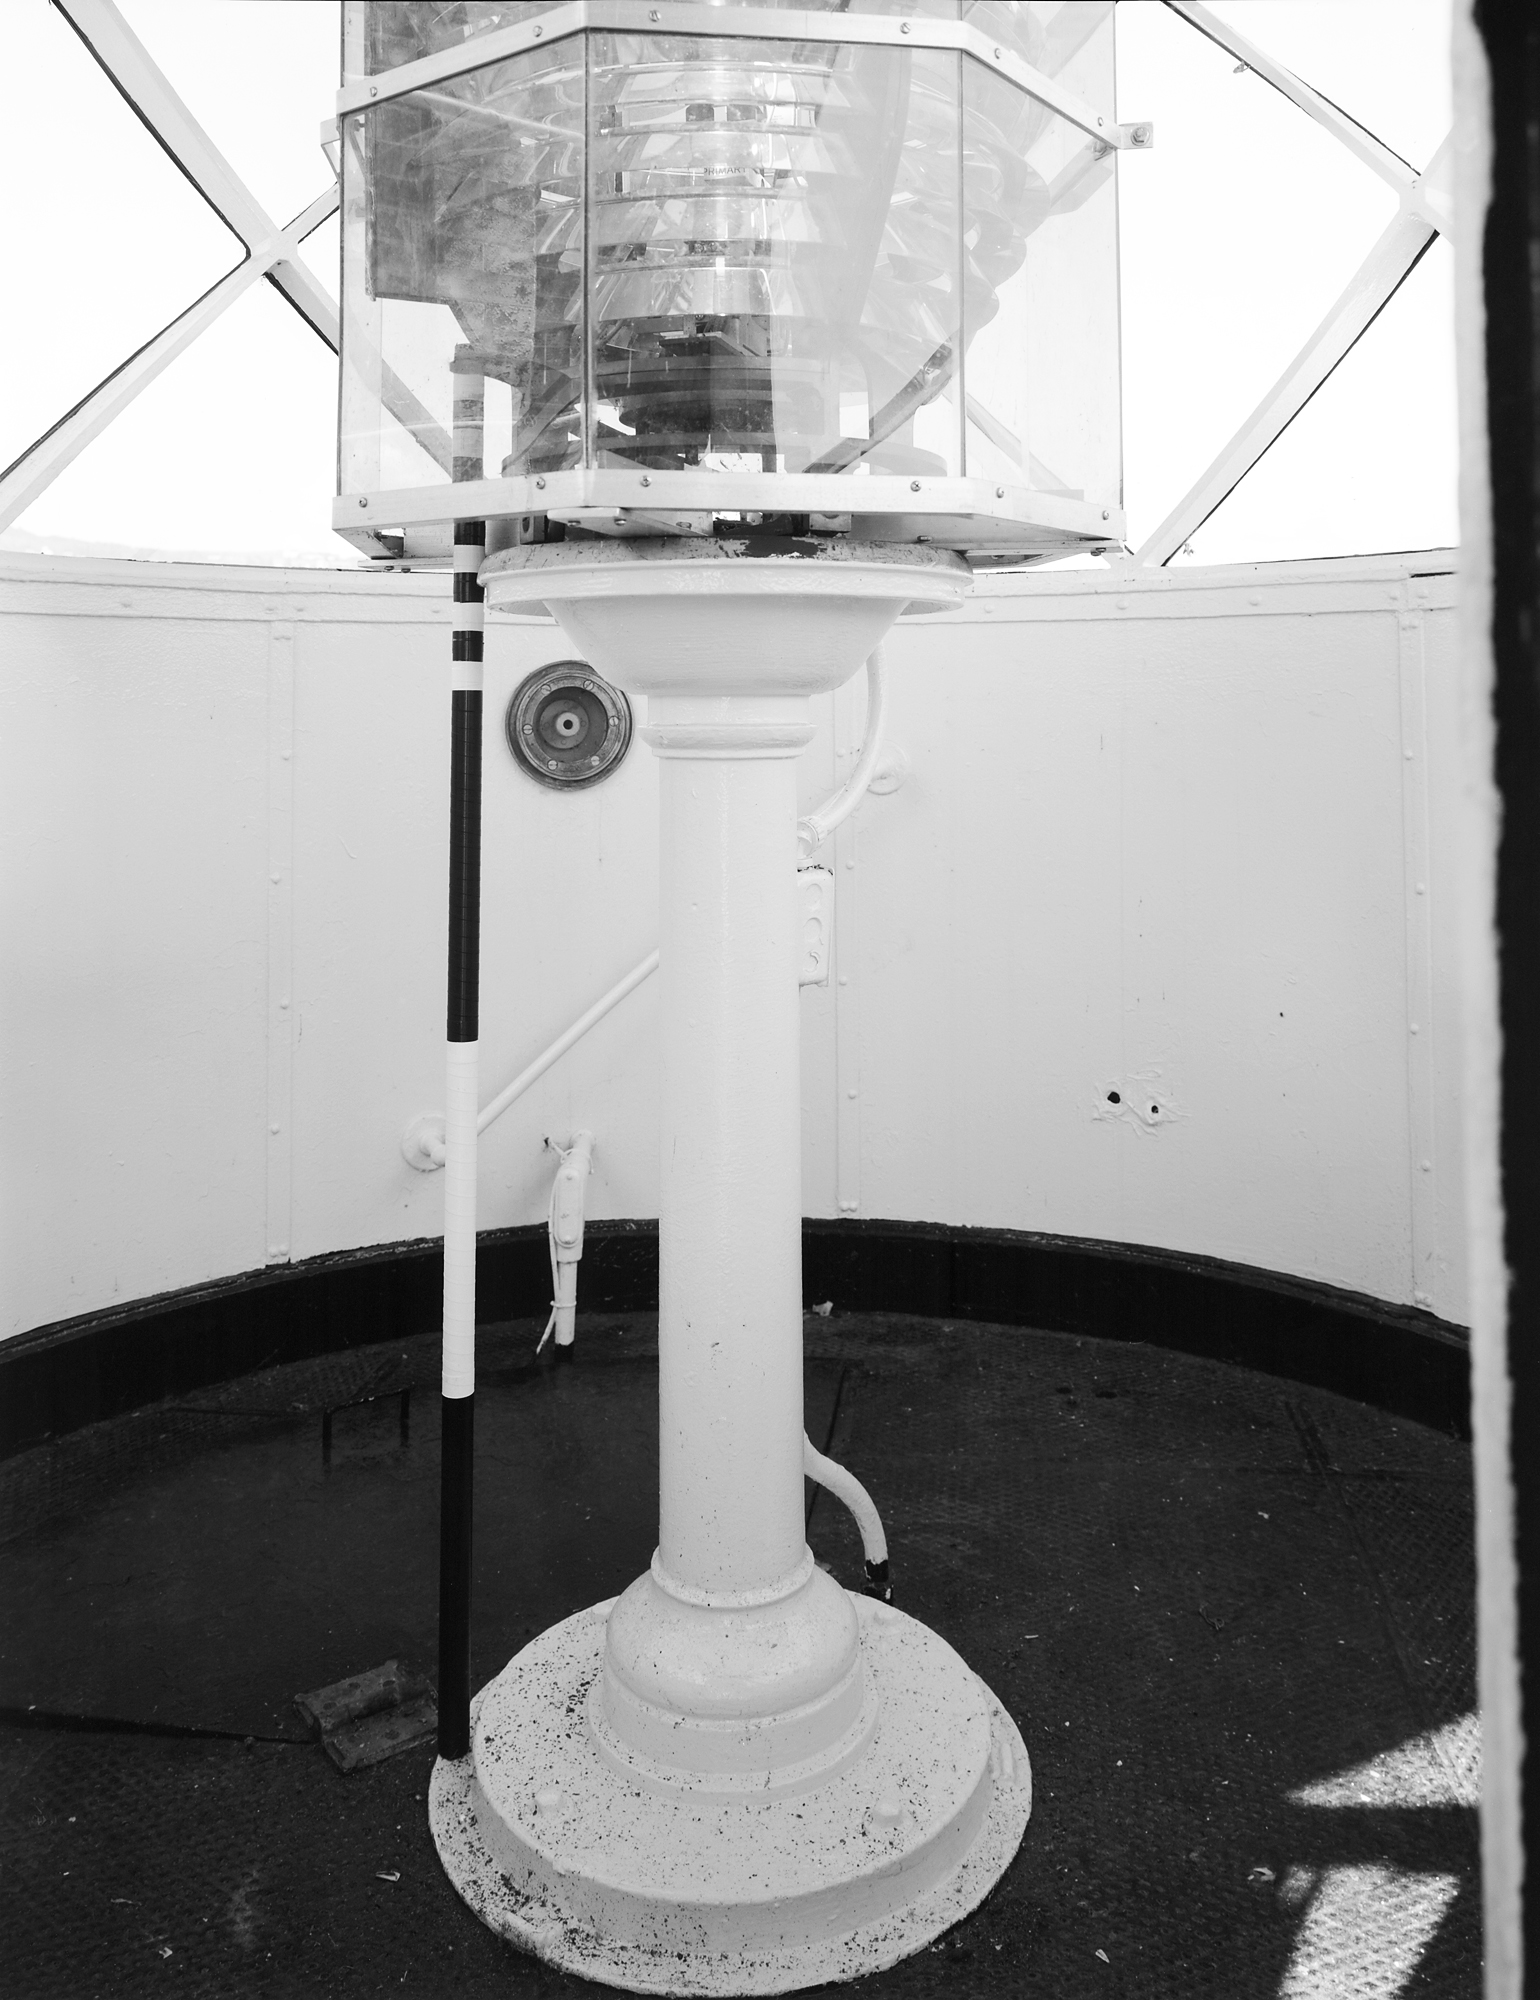 Cast Iron Fresnel Lens Pedestal - SL-DUL-2003-12 (Please credit Daniel R. Pratt and the Minnesota Historic Property Record)